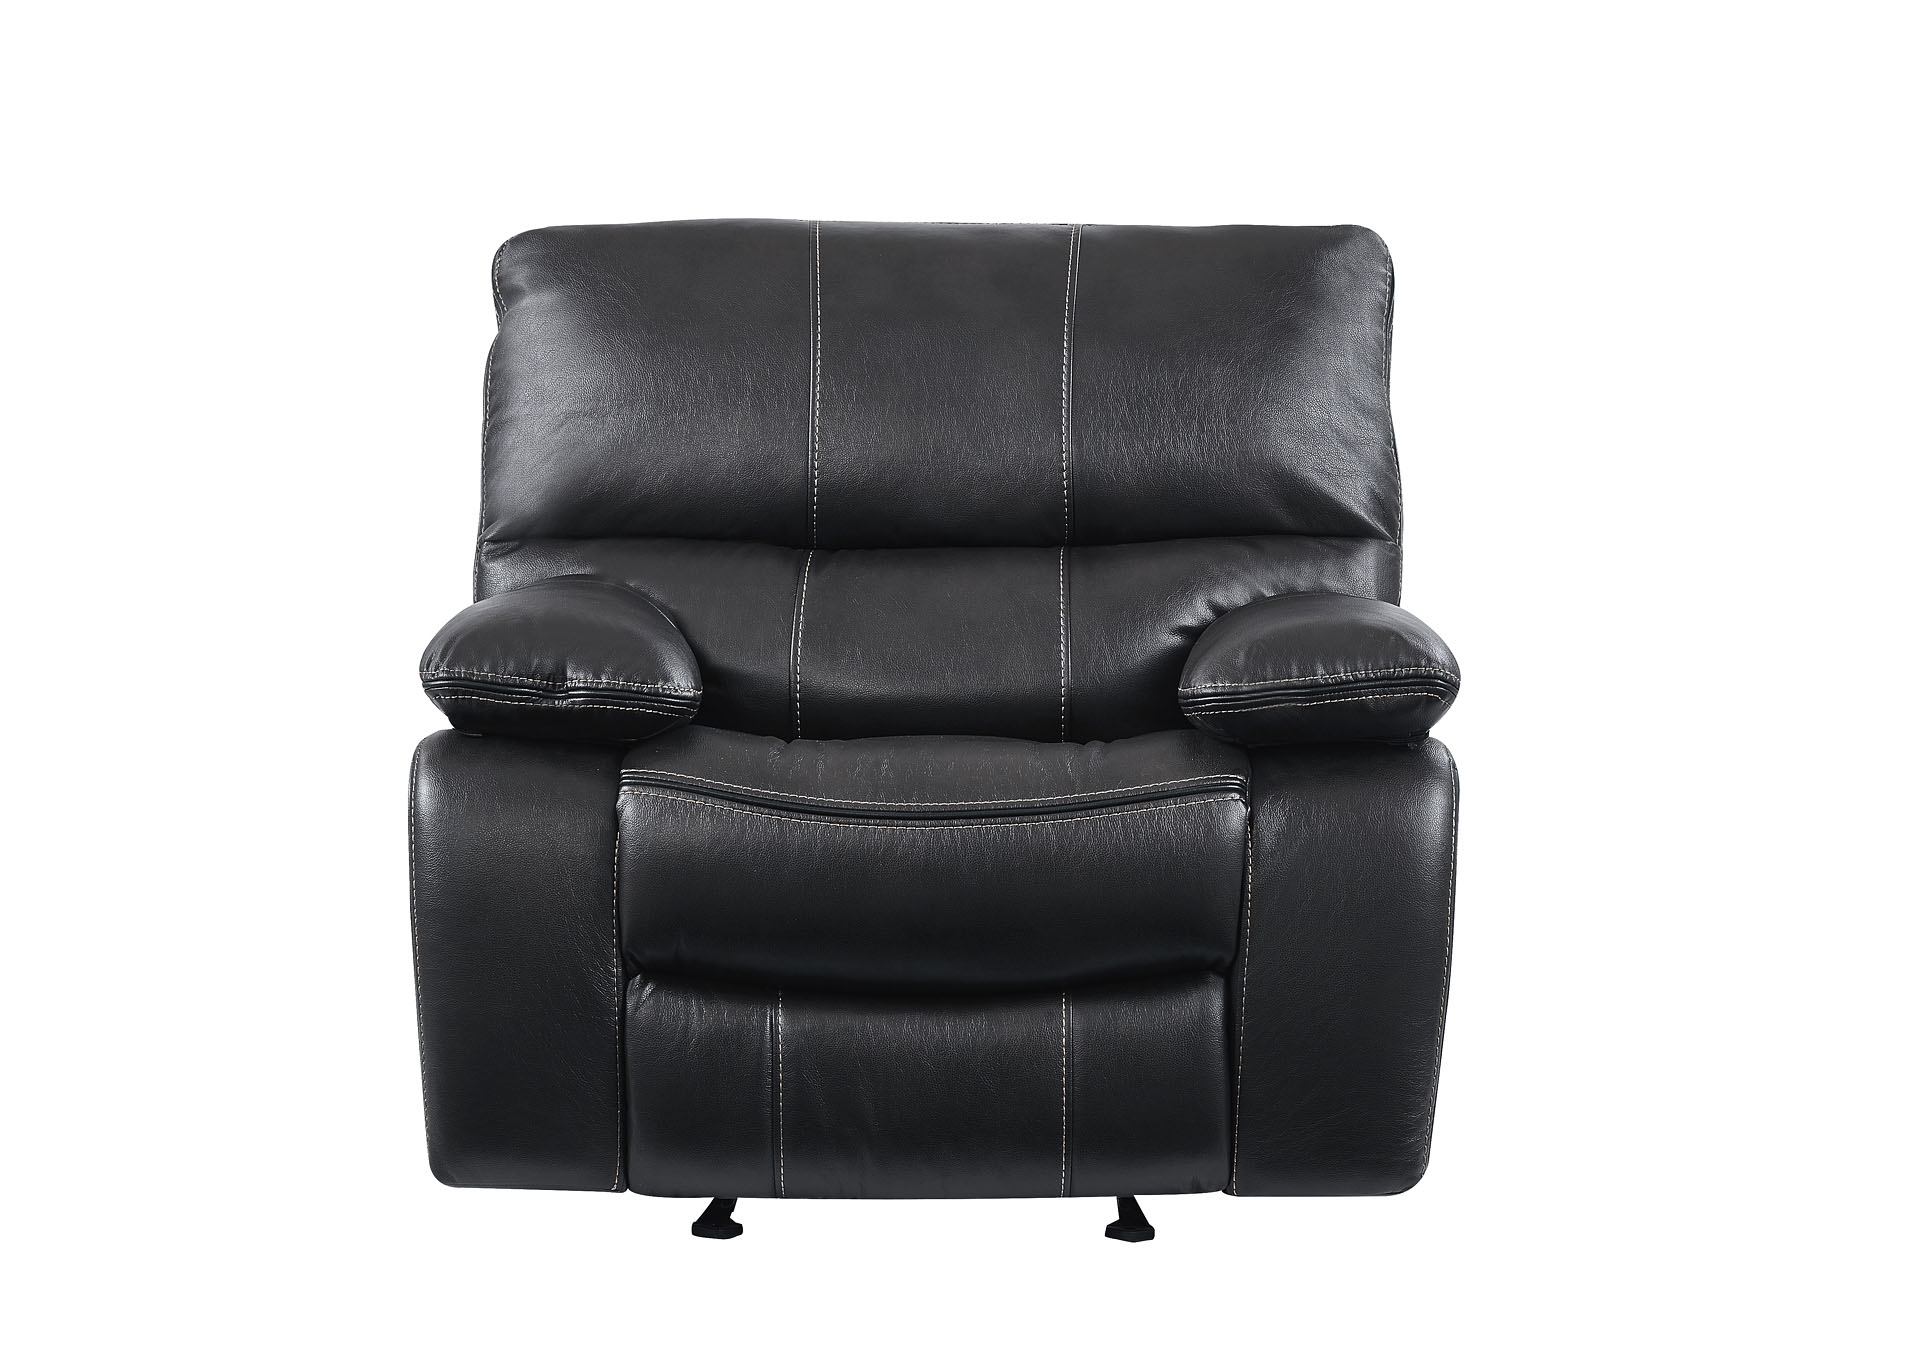 Grey/Black Glider Recliner,Global Furniture USA